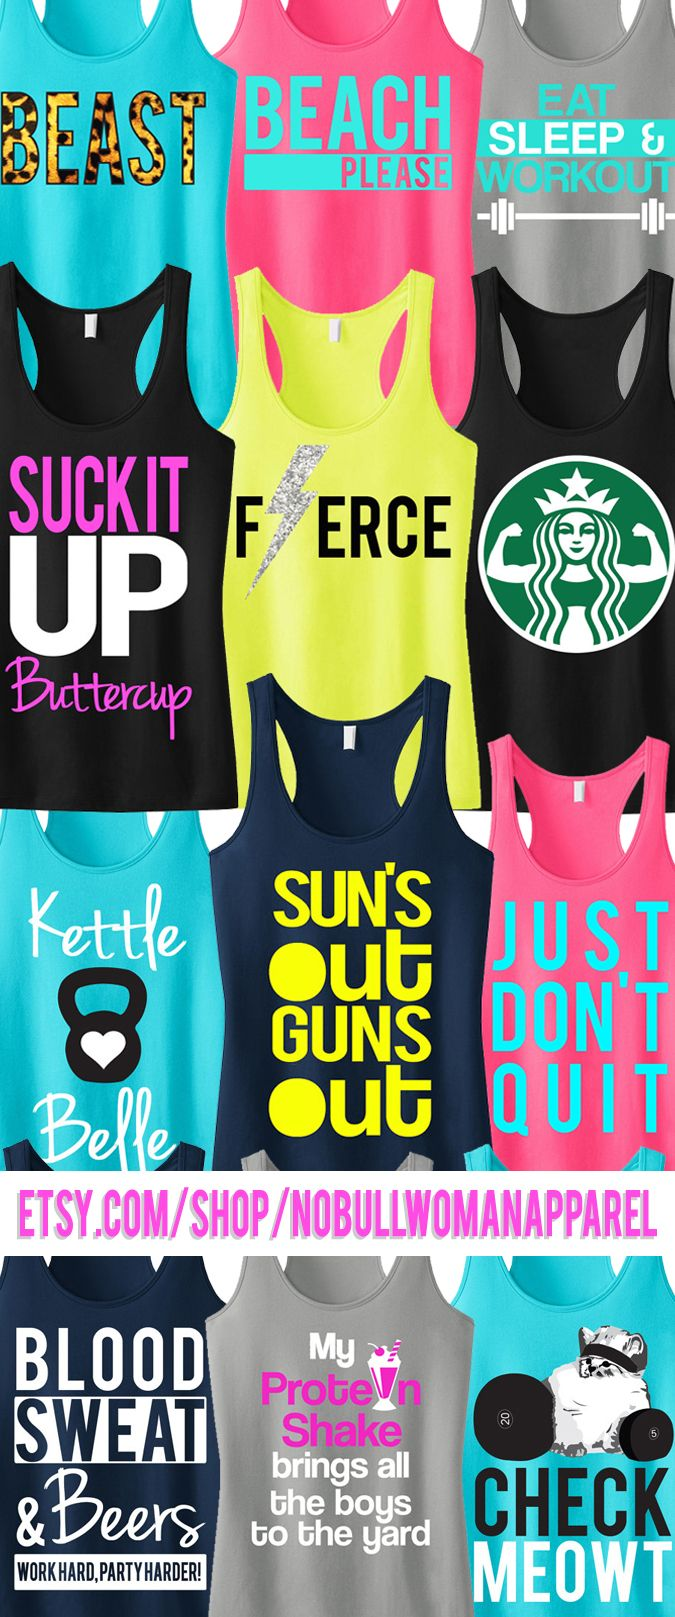 This shop has a ton of Awesome #Workout Tank tops! Pick Any 3 and get %15 Off. #